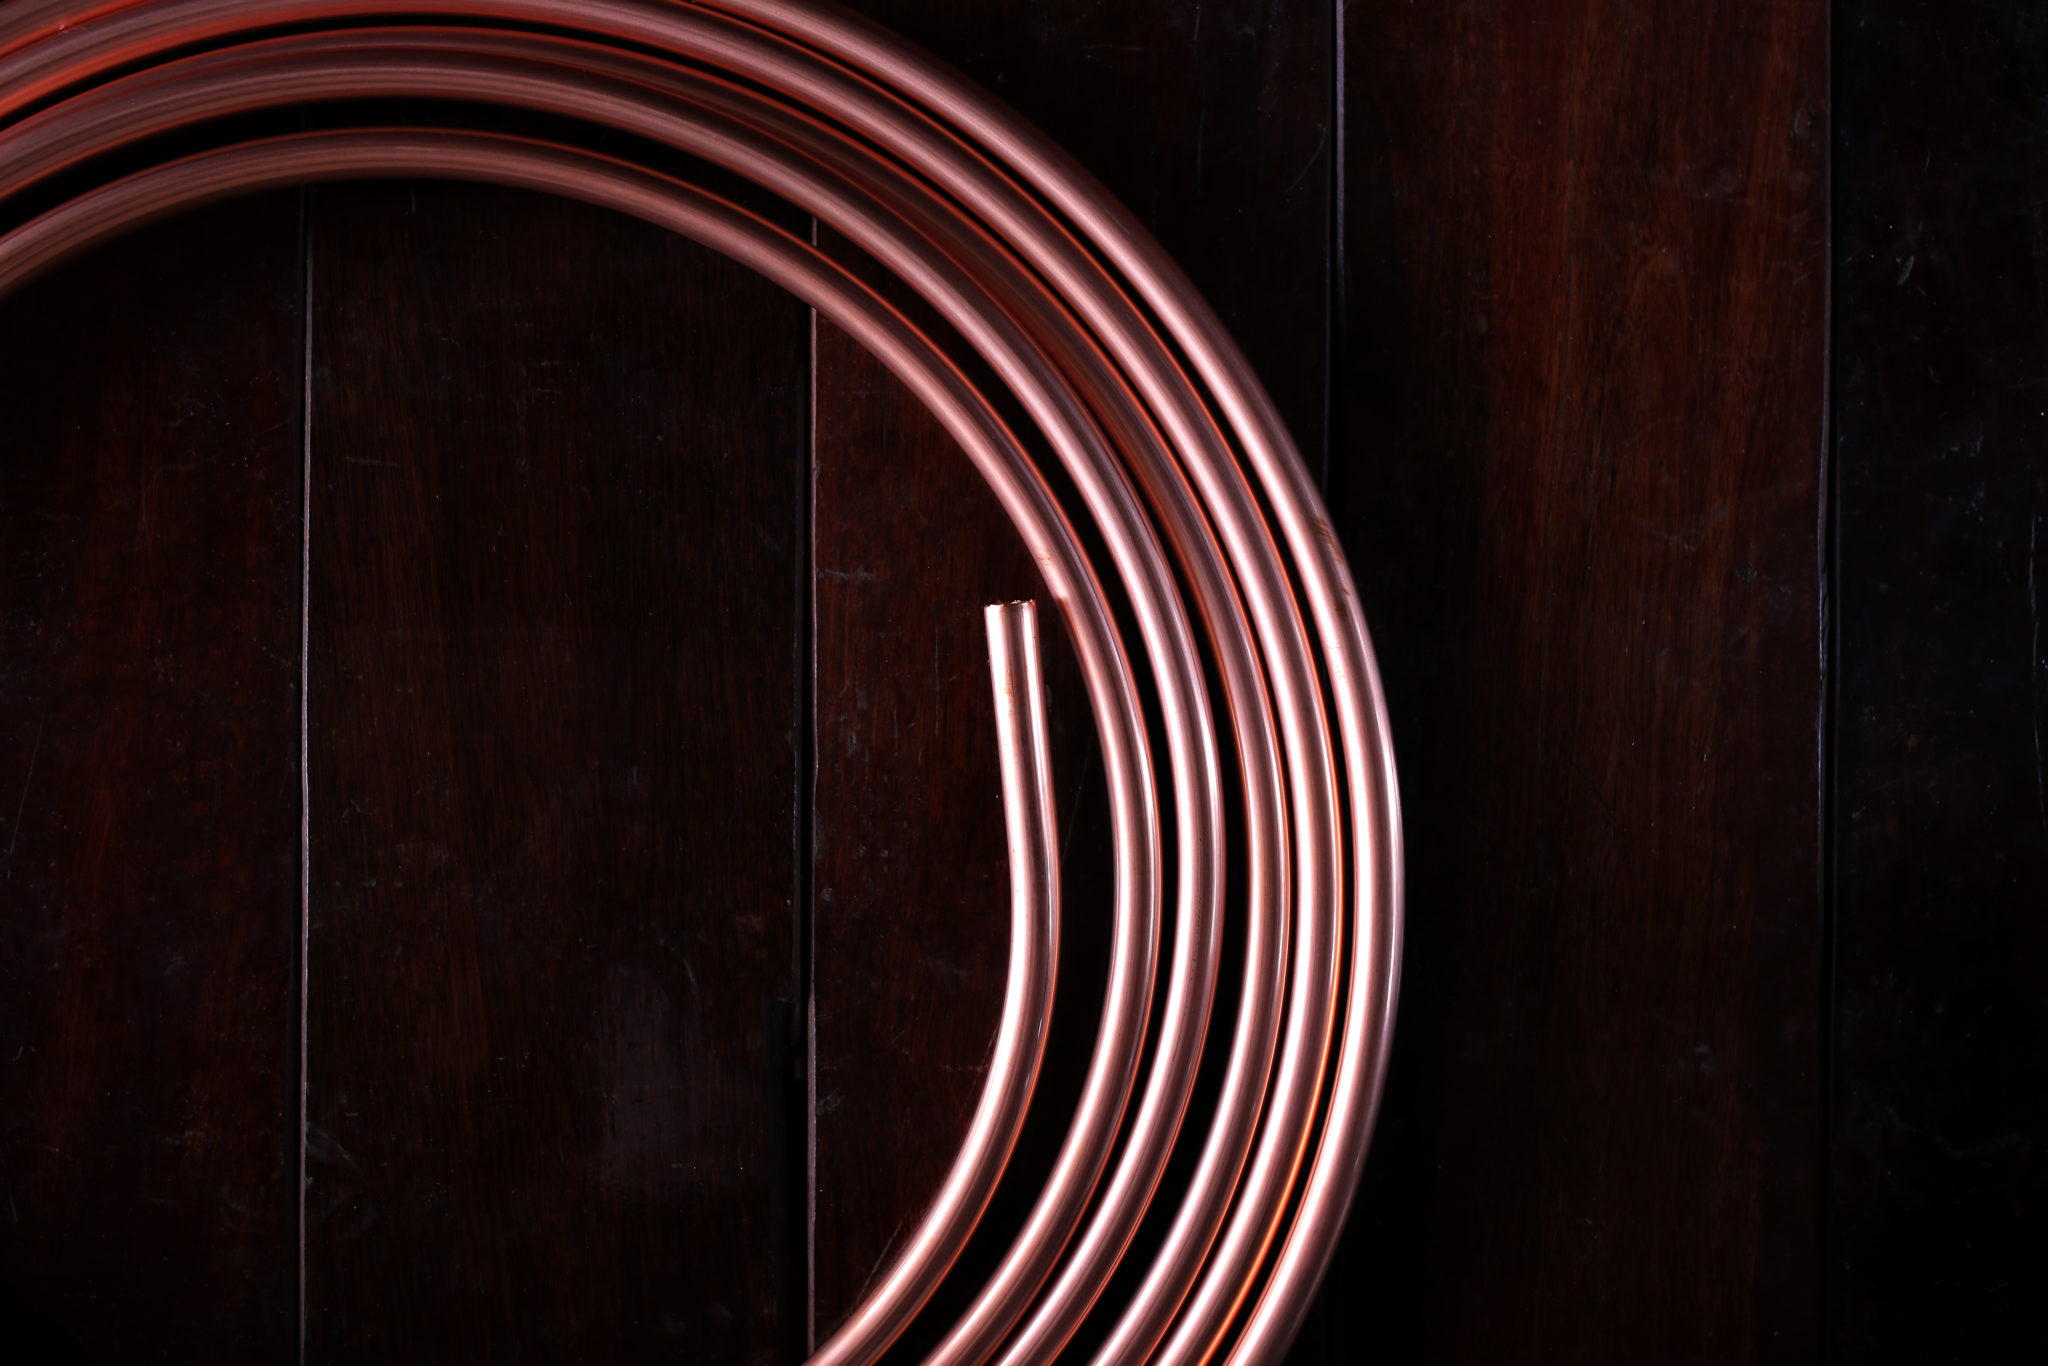 Coiled copper